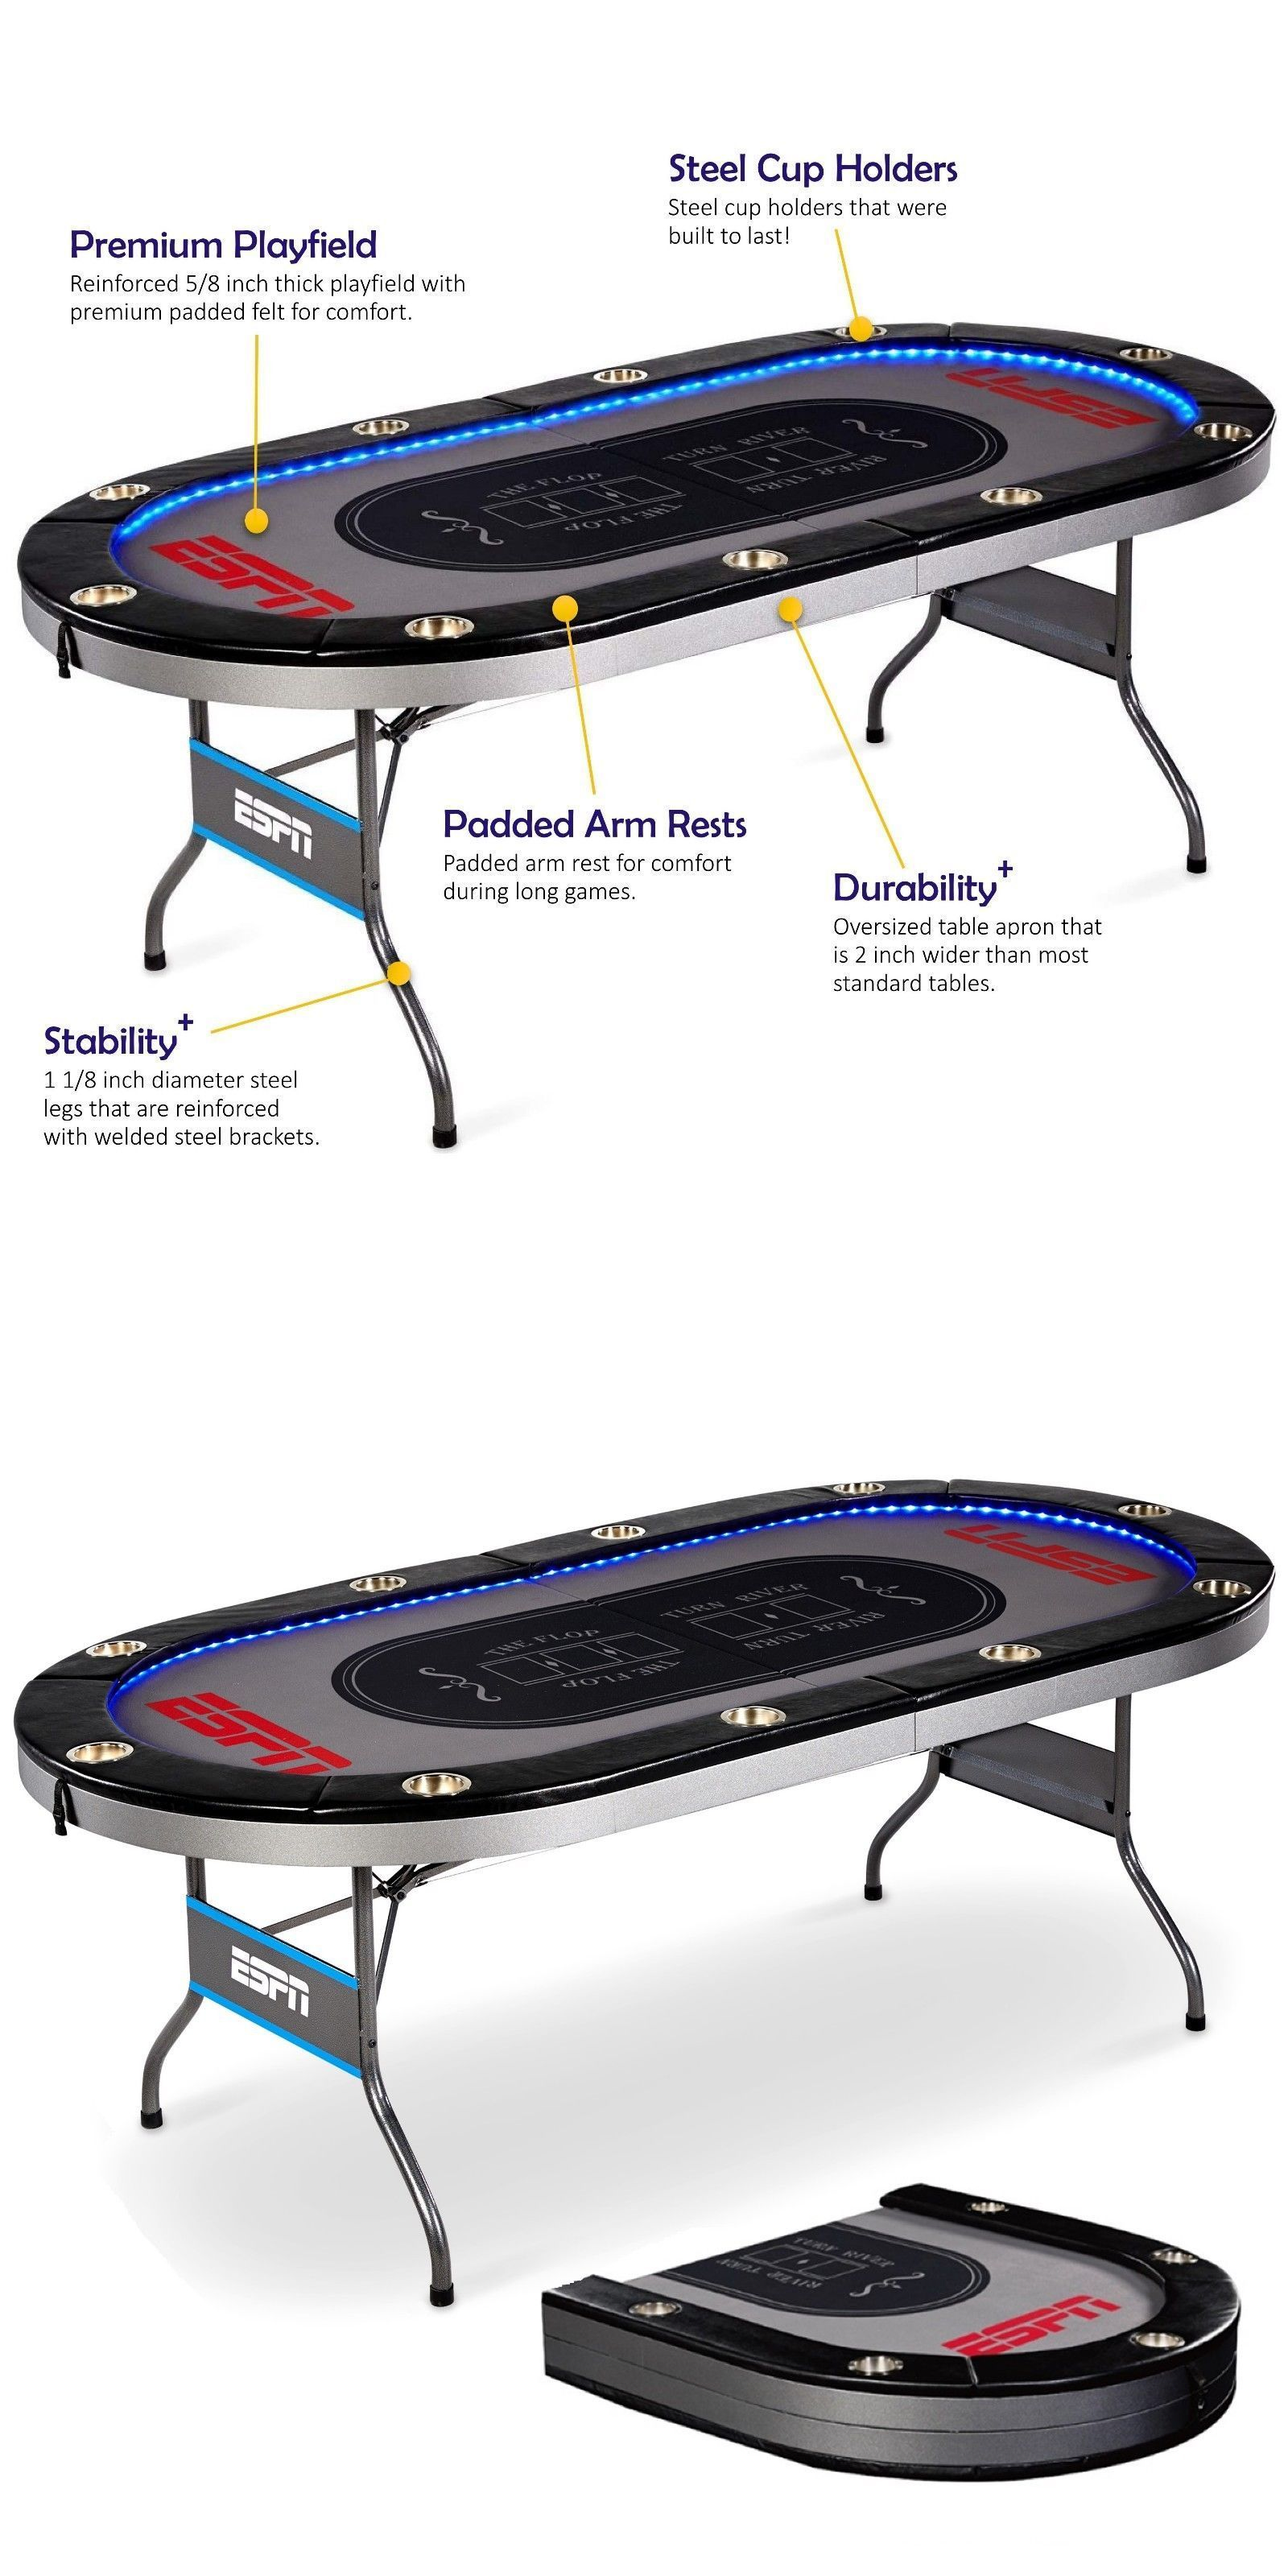 Card Tables And Tabletops 166572 Espn Premium 10 Player Poker Table Layout Card Positions Led Lights Foldable New Buy It Now O Poker Table Table Led Lights